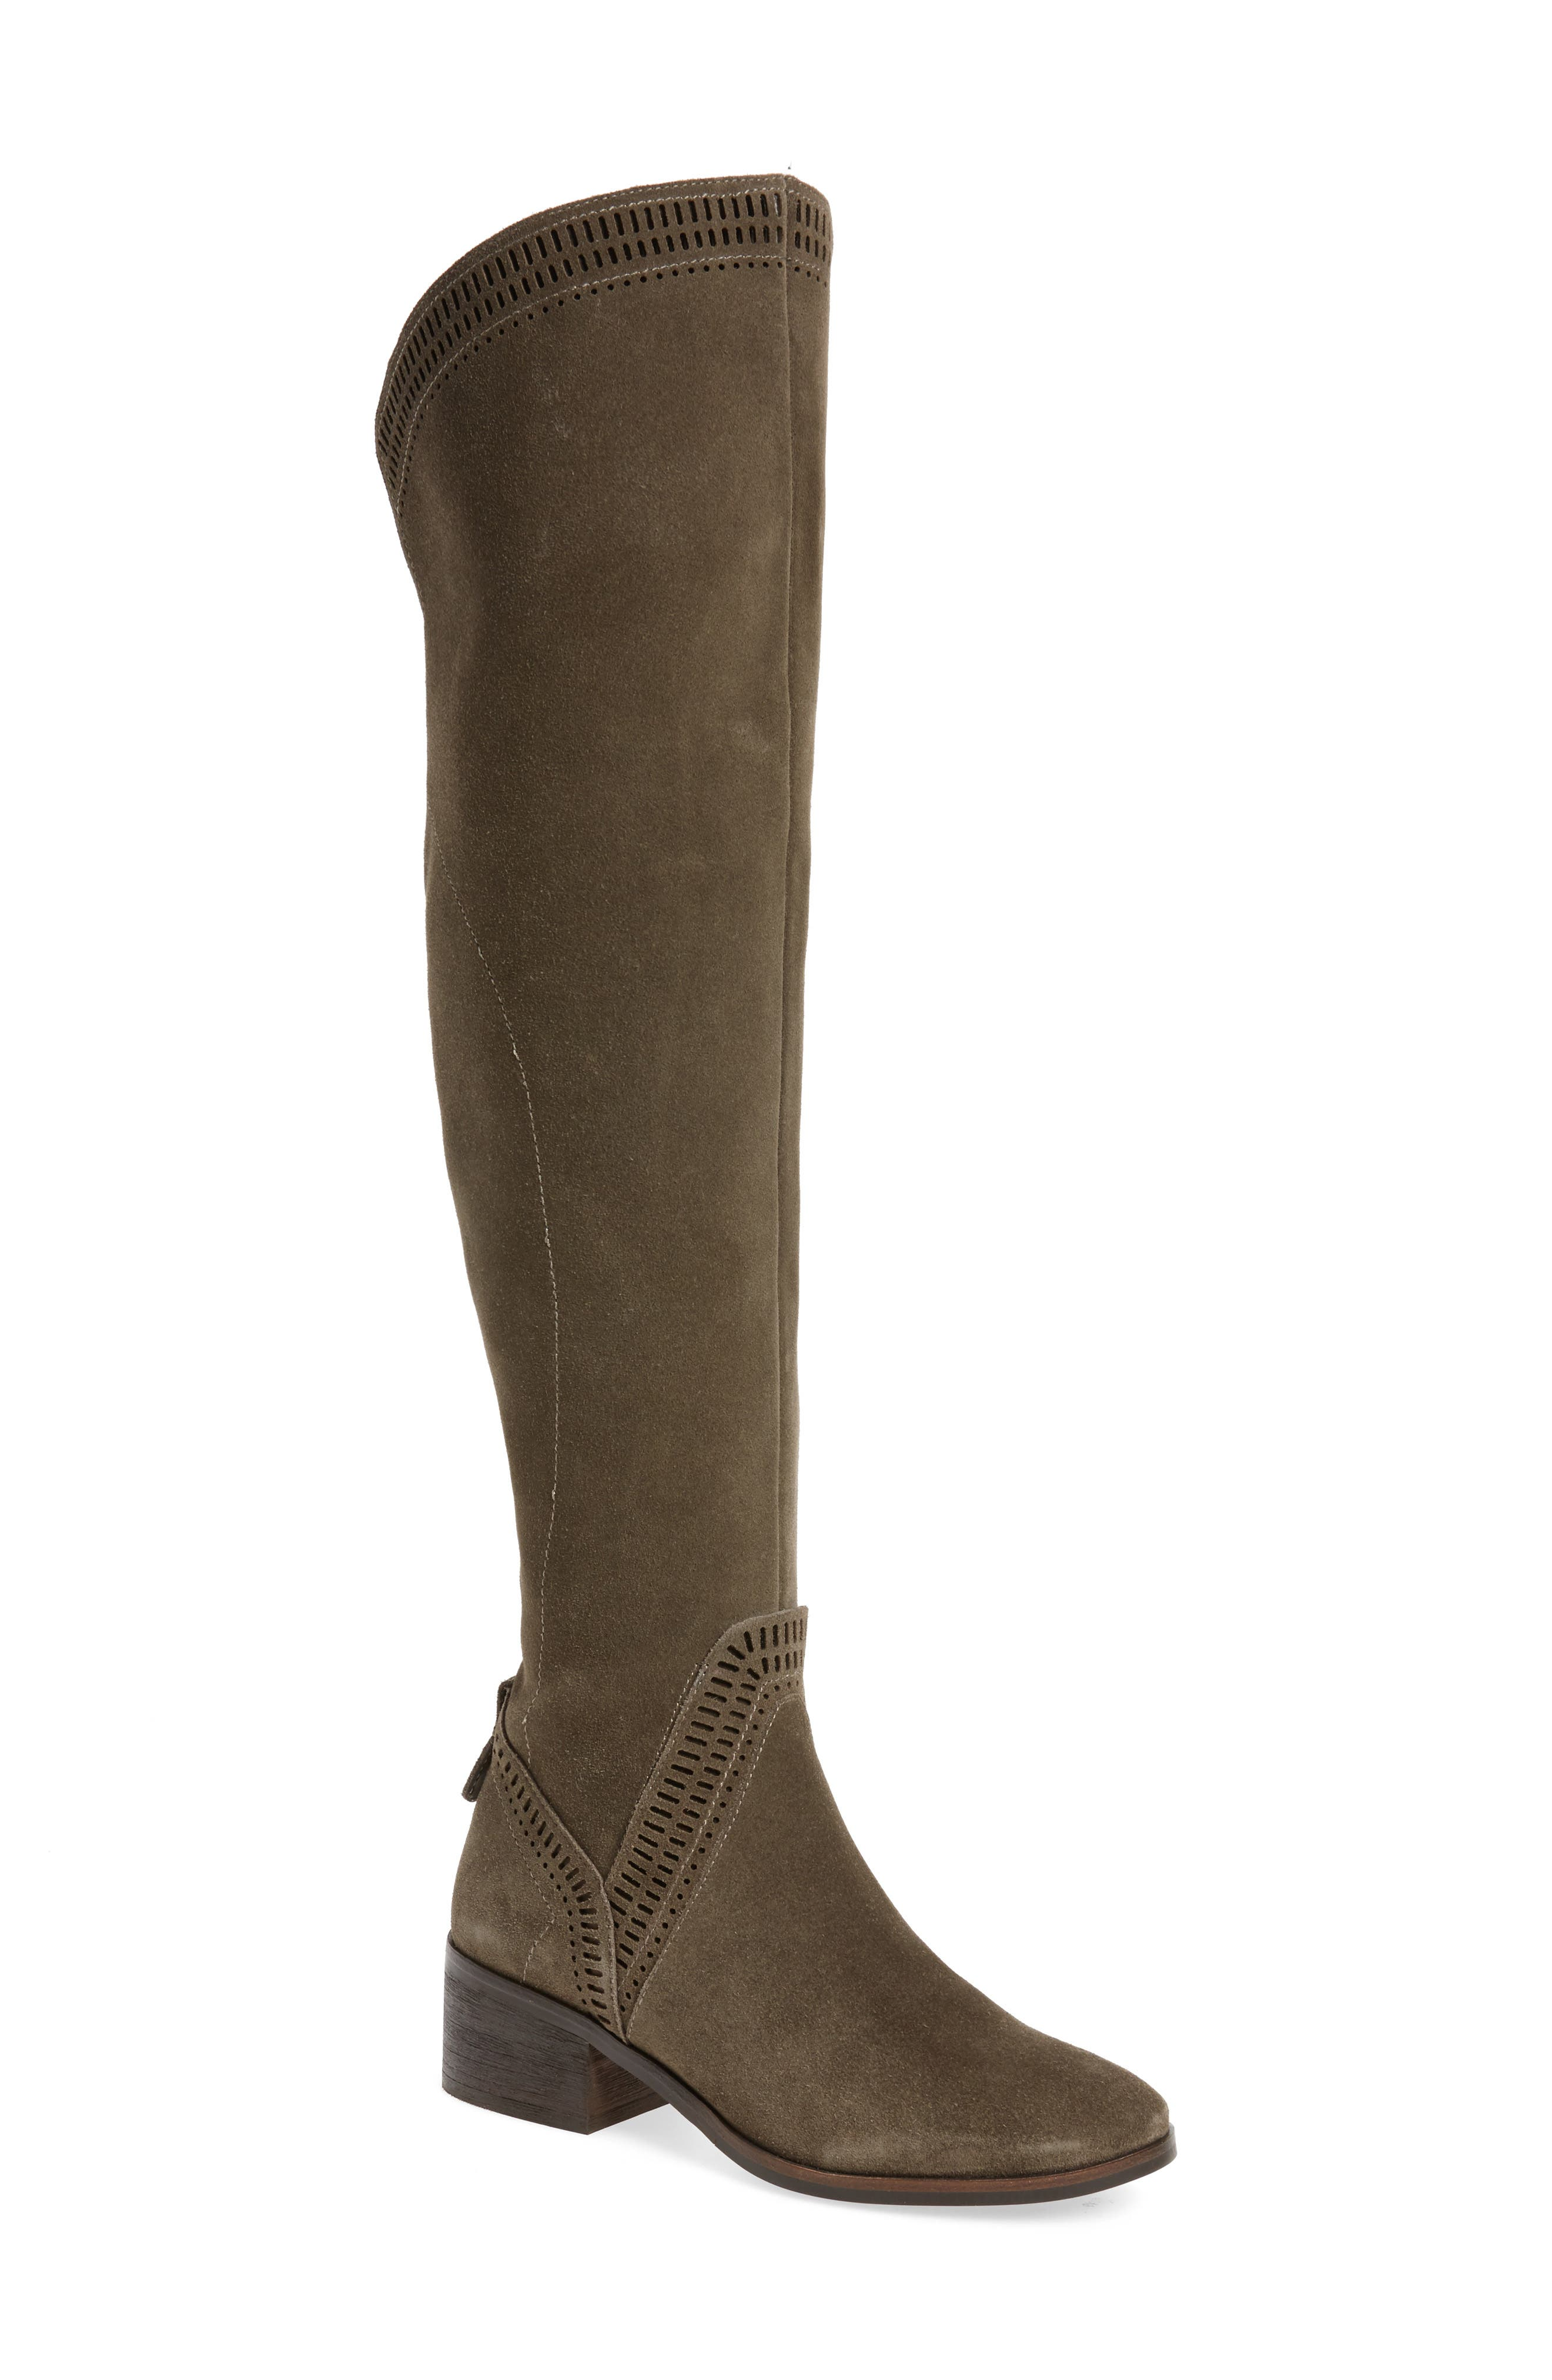 Alternate Image 1 Selected - Vince Camuto Karinda Over the Knee Boot (Women)